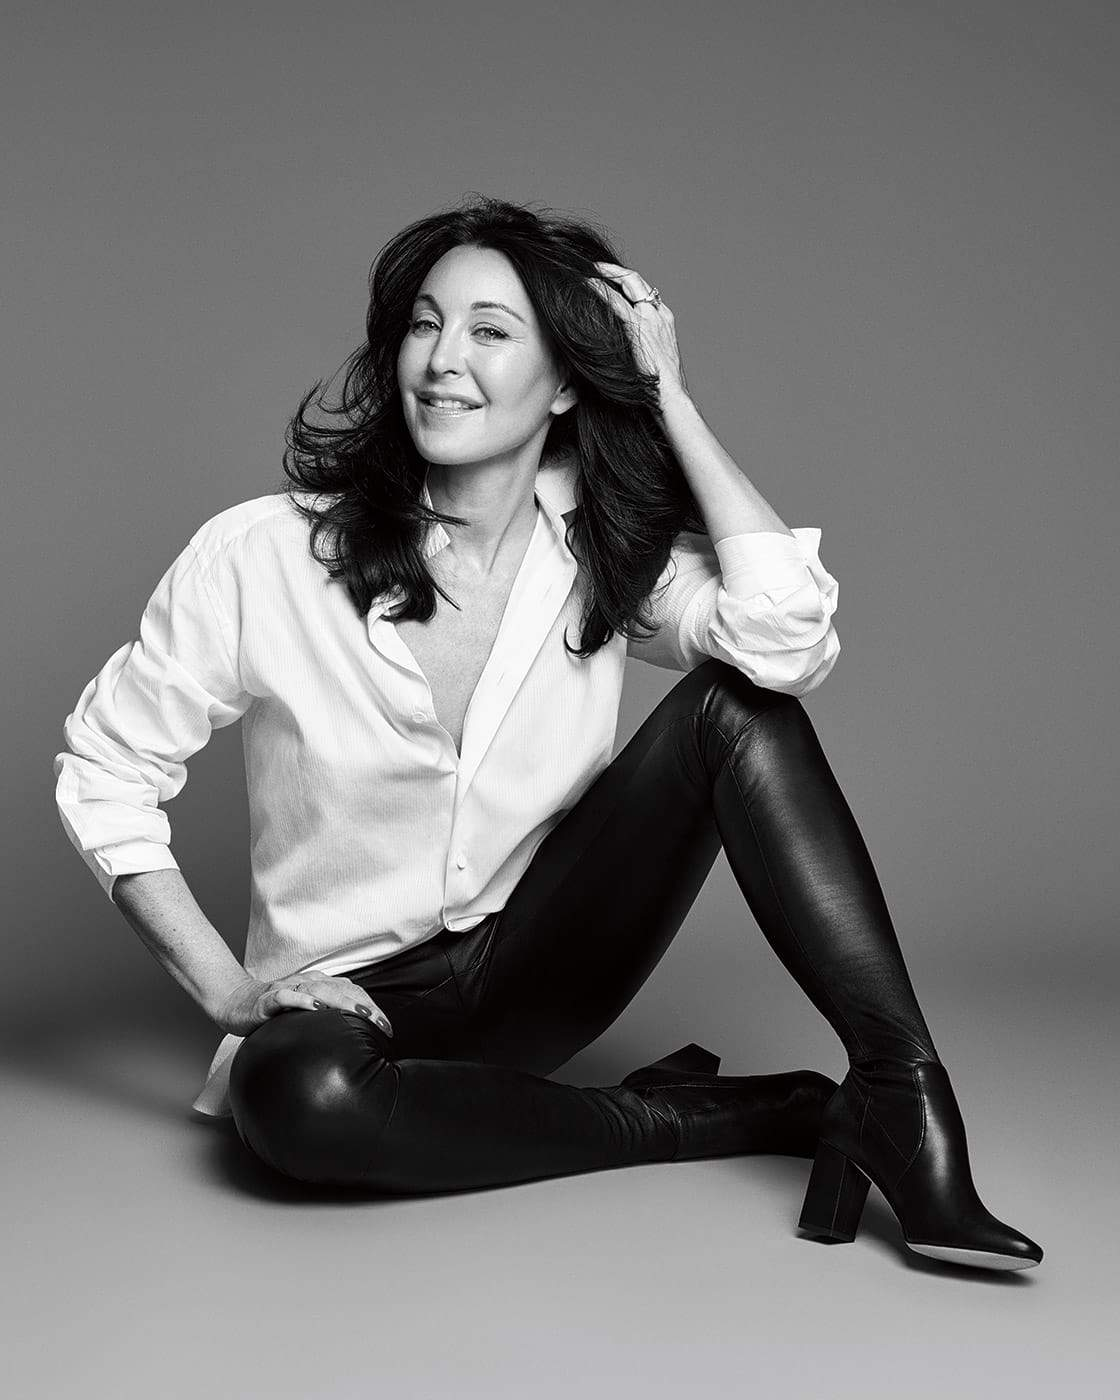 International Women's Day - 25 Legendary Women in Fashion - Tamara Mellon - Tamara Mellon - jimmy choo - women empowerment - empowering women